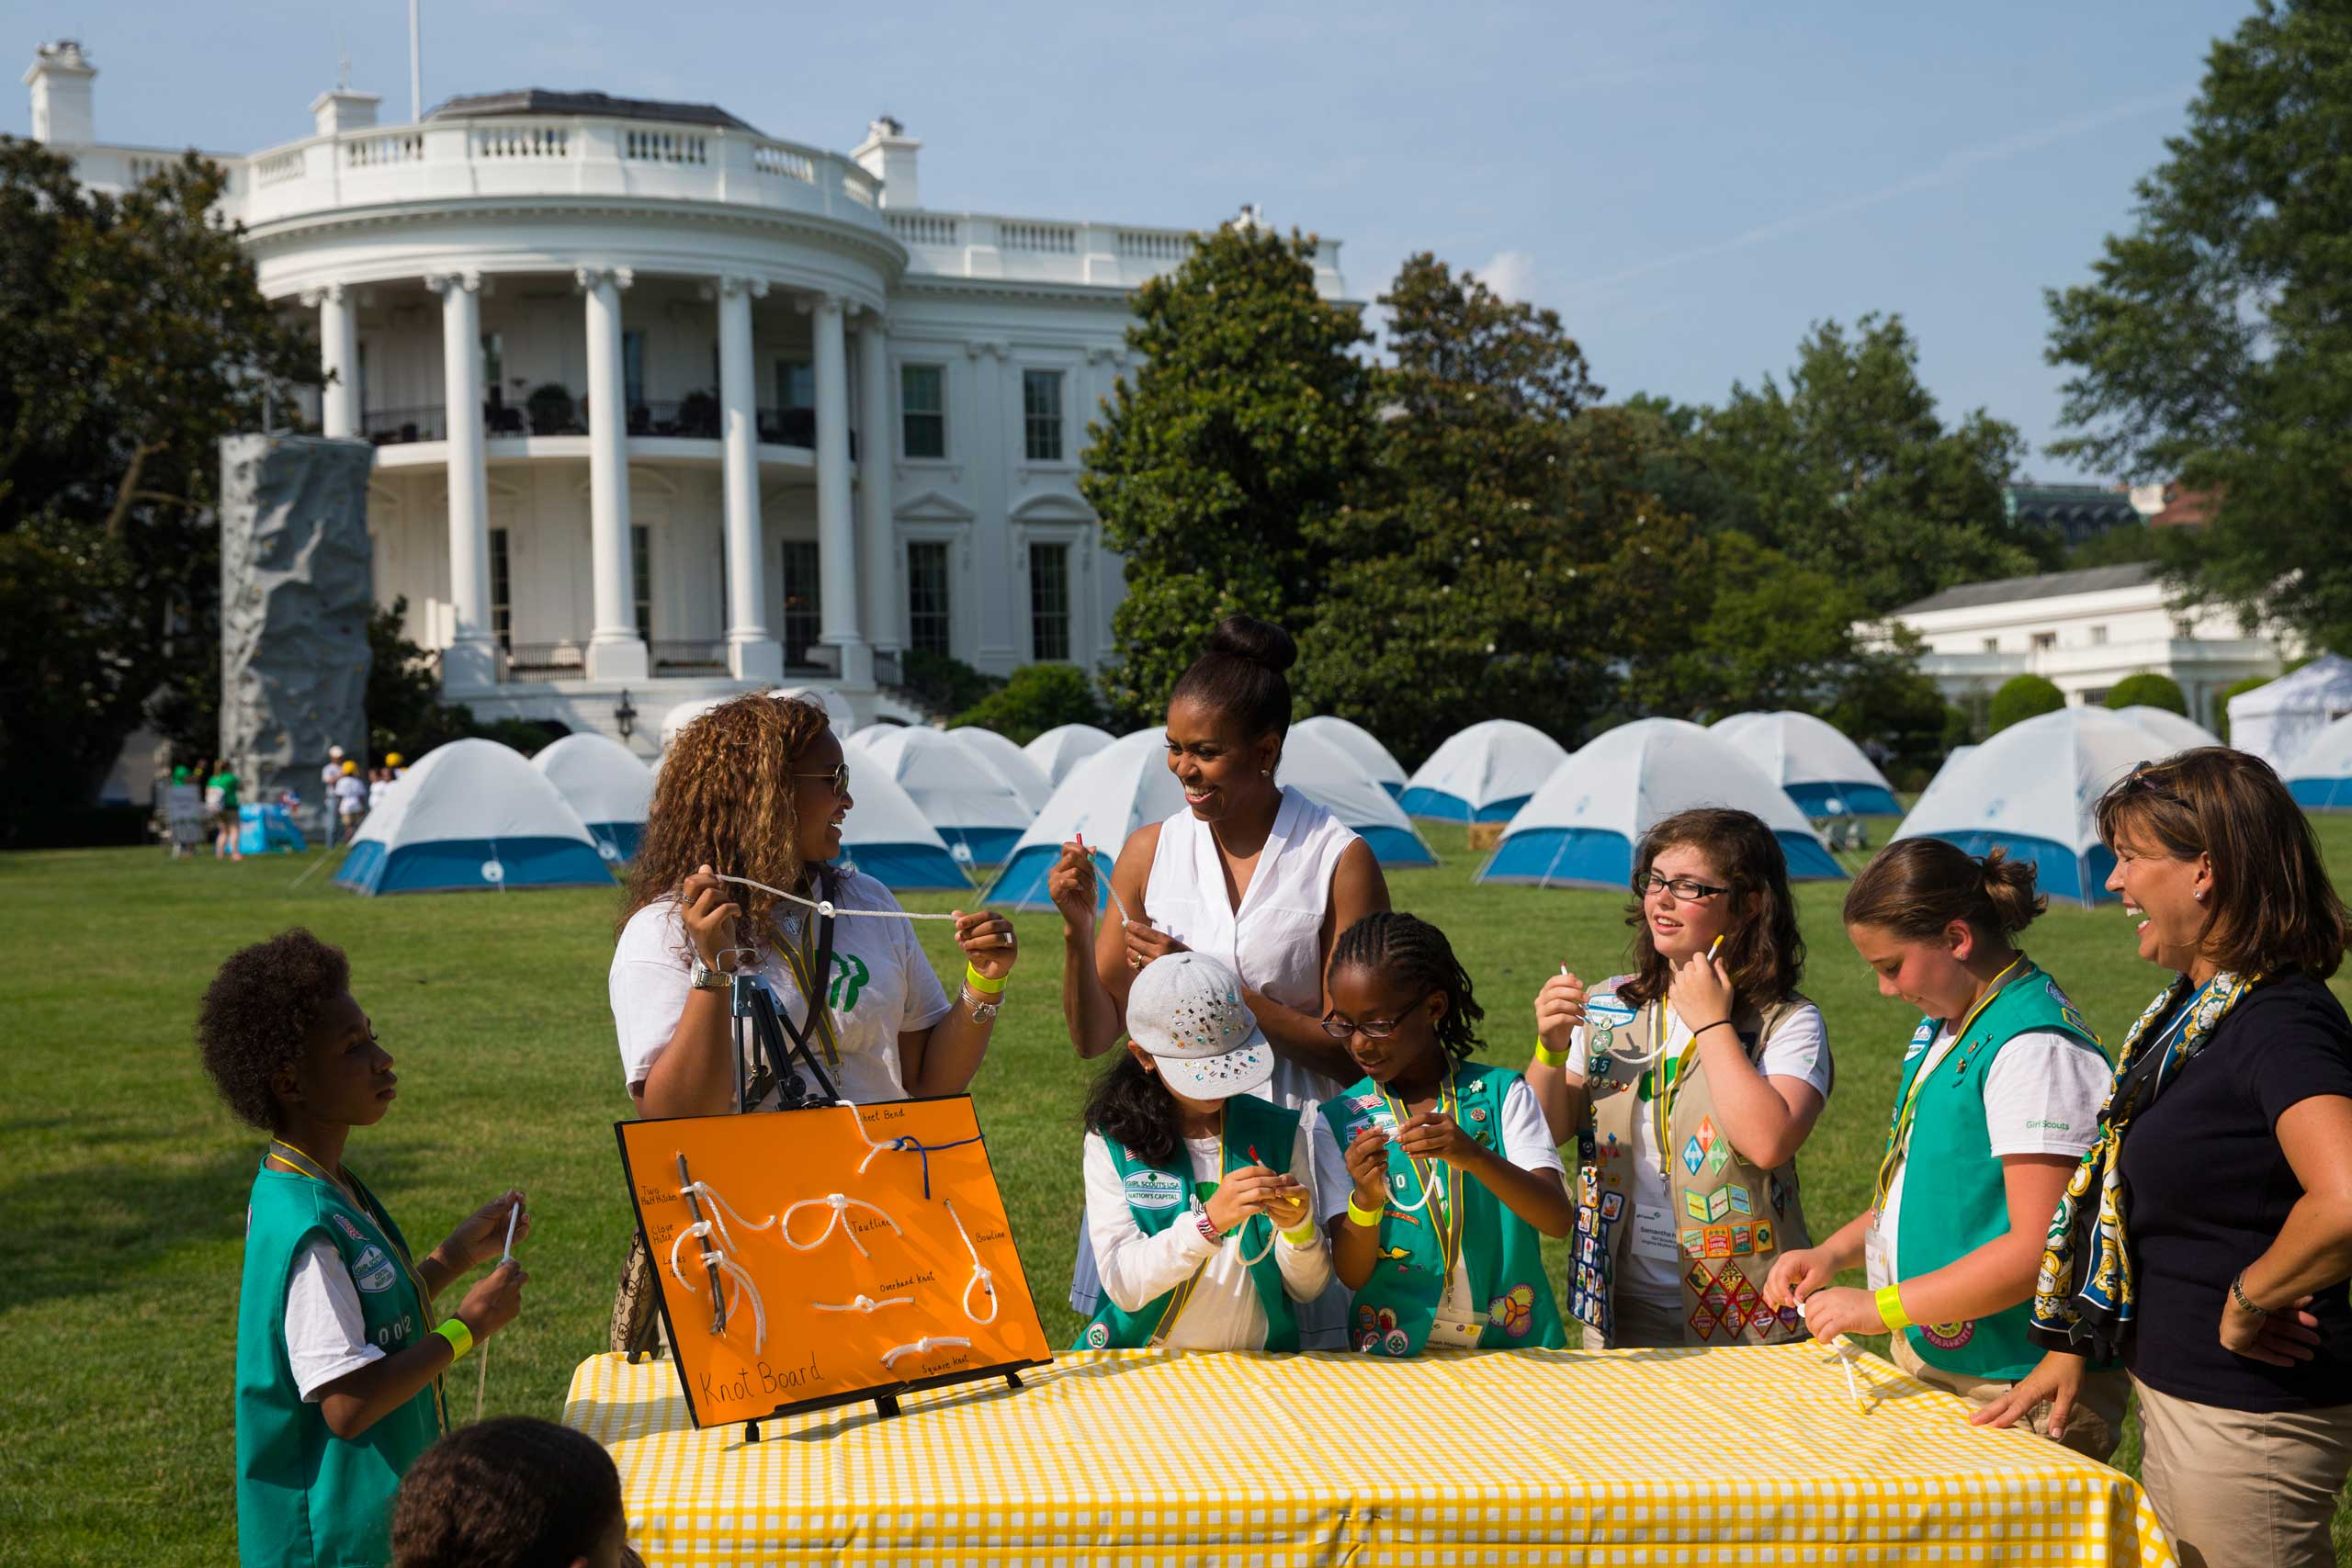 First lady Michelle Obama participates in a knot tying station during a Lets Move! event with Girl Scouts on the South Lawn of the White House in Washington, on June 30, 2015.